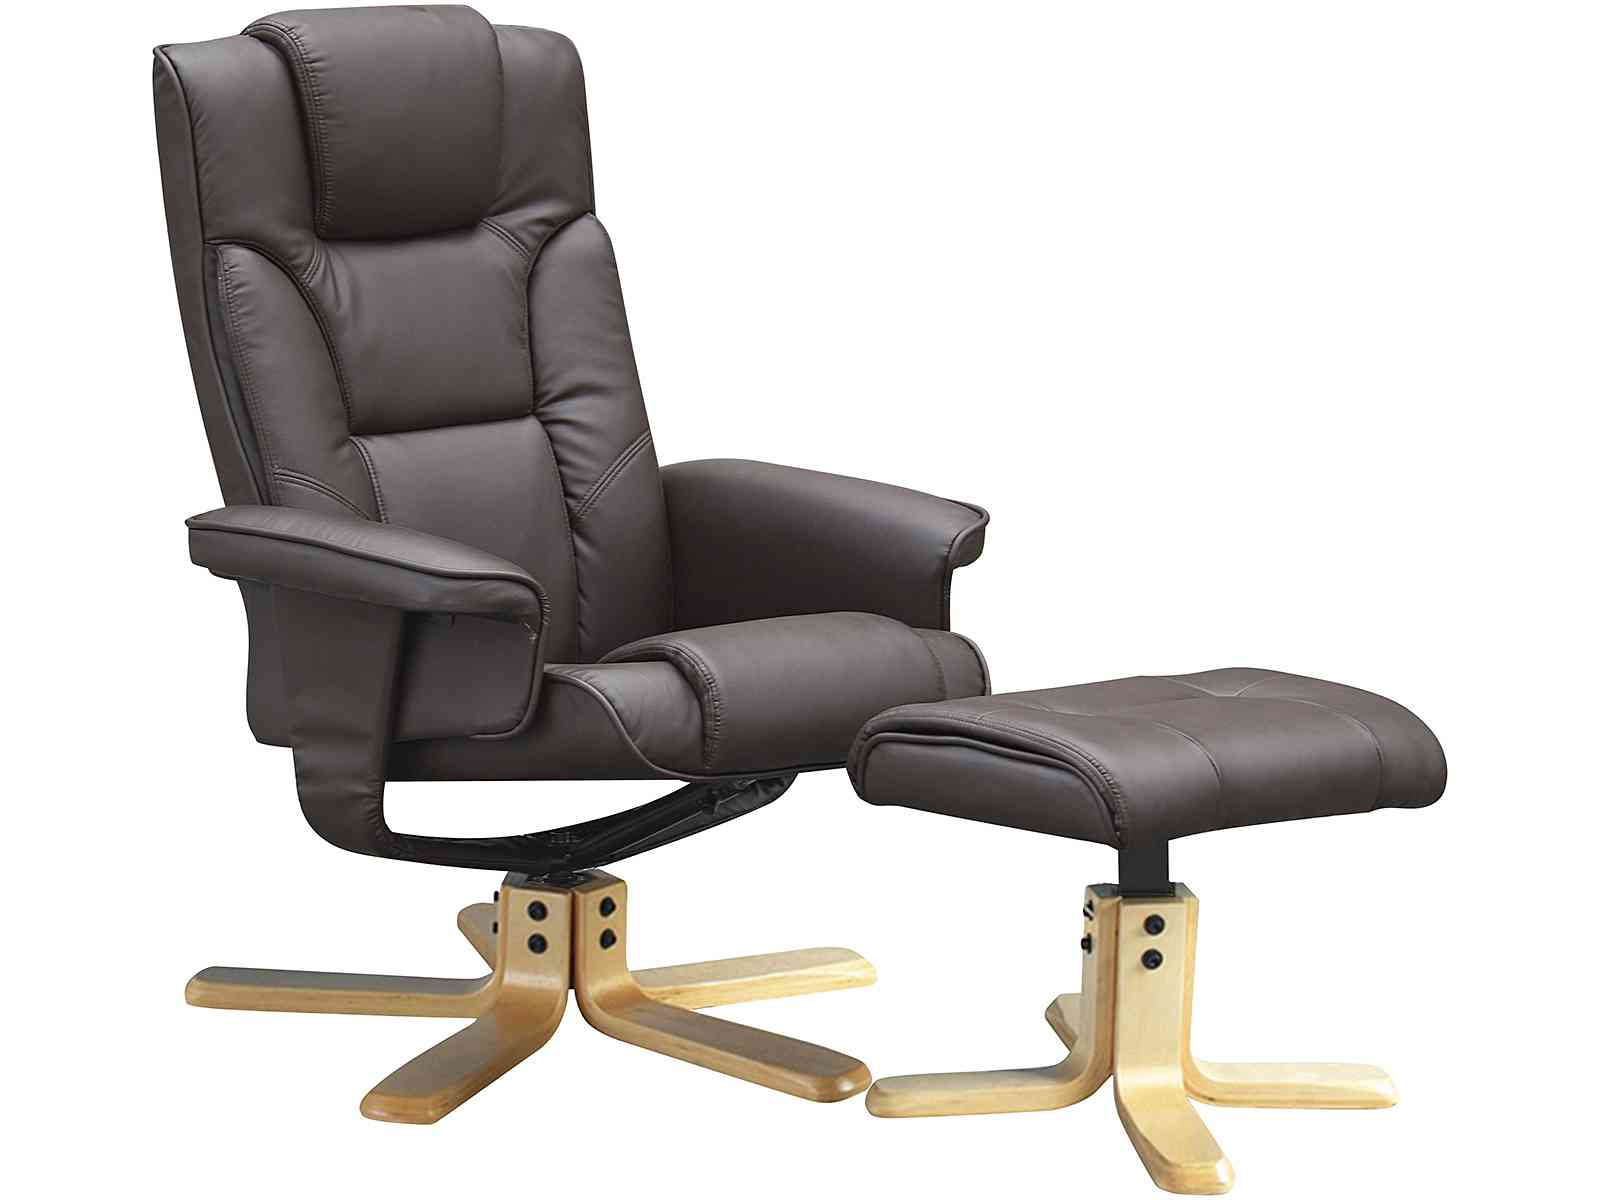 Peachy Gfw The Furniture Warehouse Boston Recliner And Footstool Gamerscity Chair Design For Home Gamerscityorg